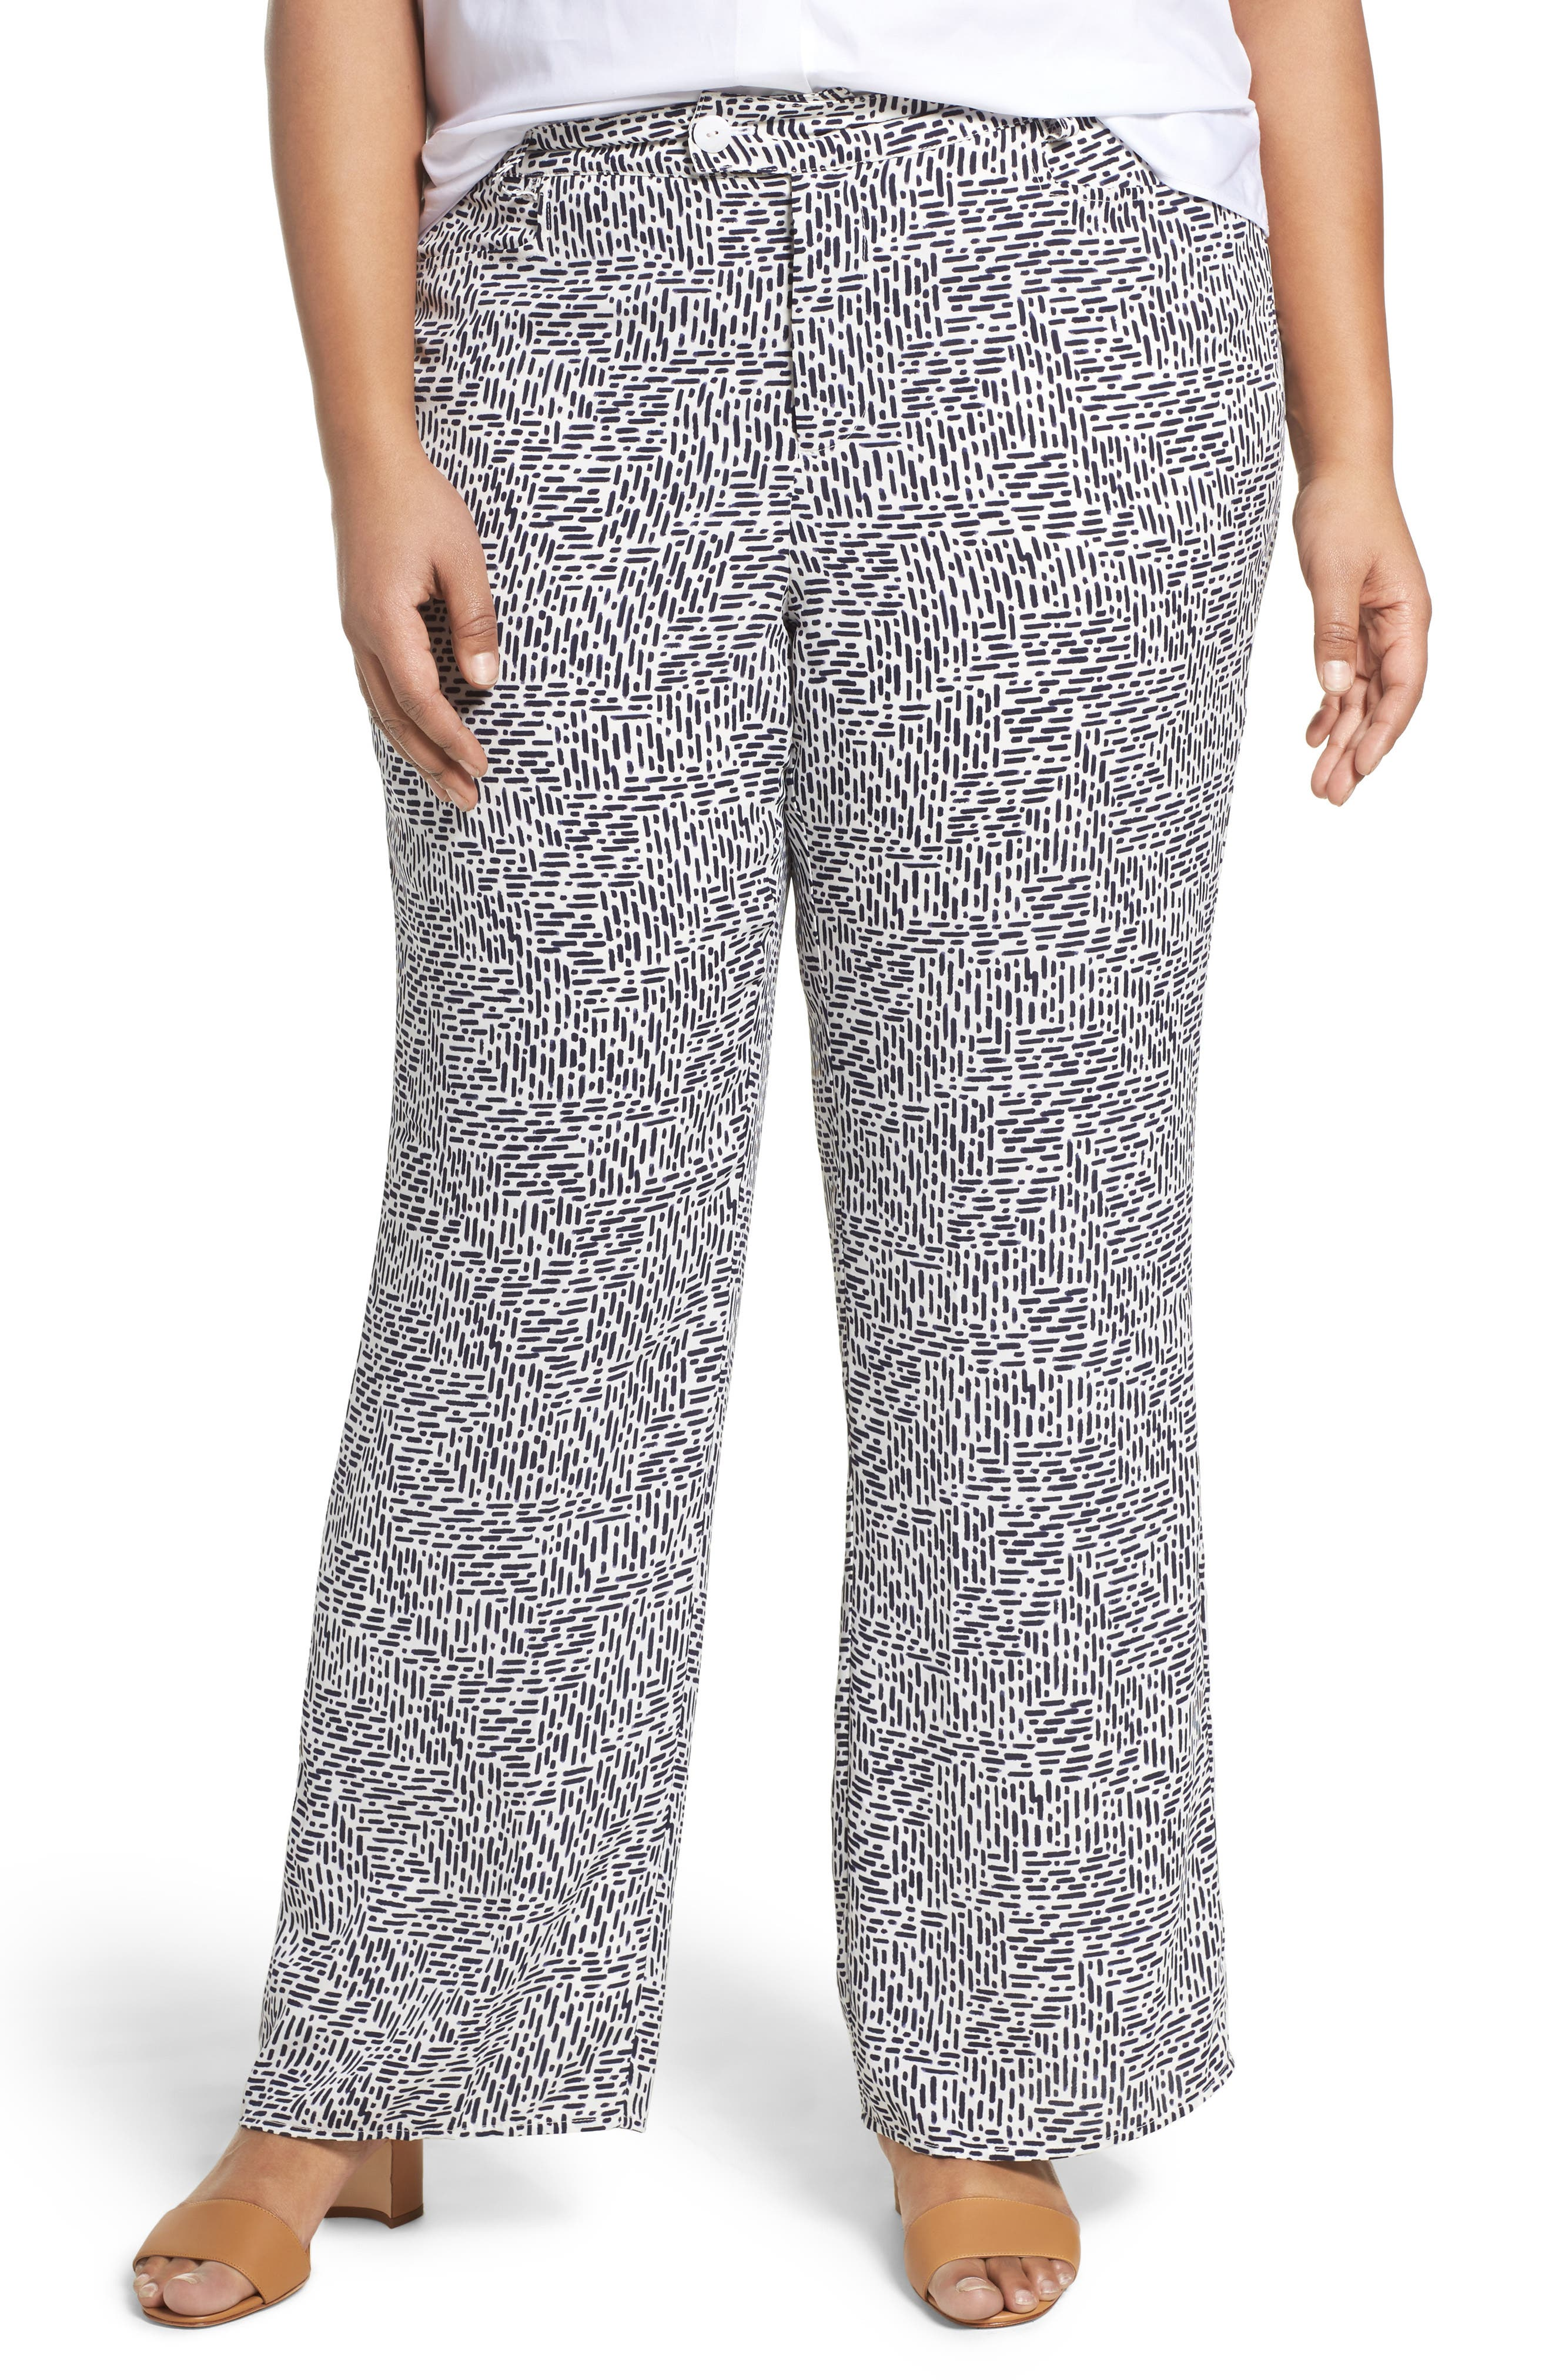 Dots & Dashes Flare Leg Pants,                         Main,                         color, White/ Navy